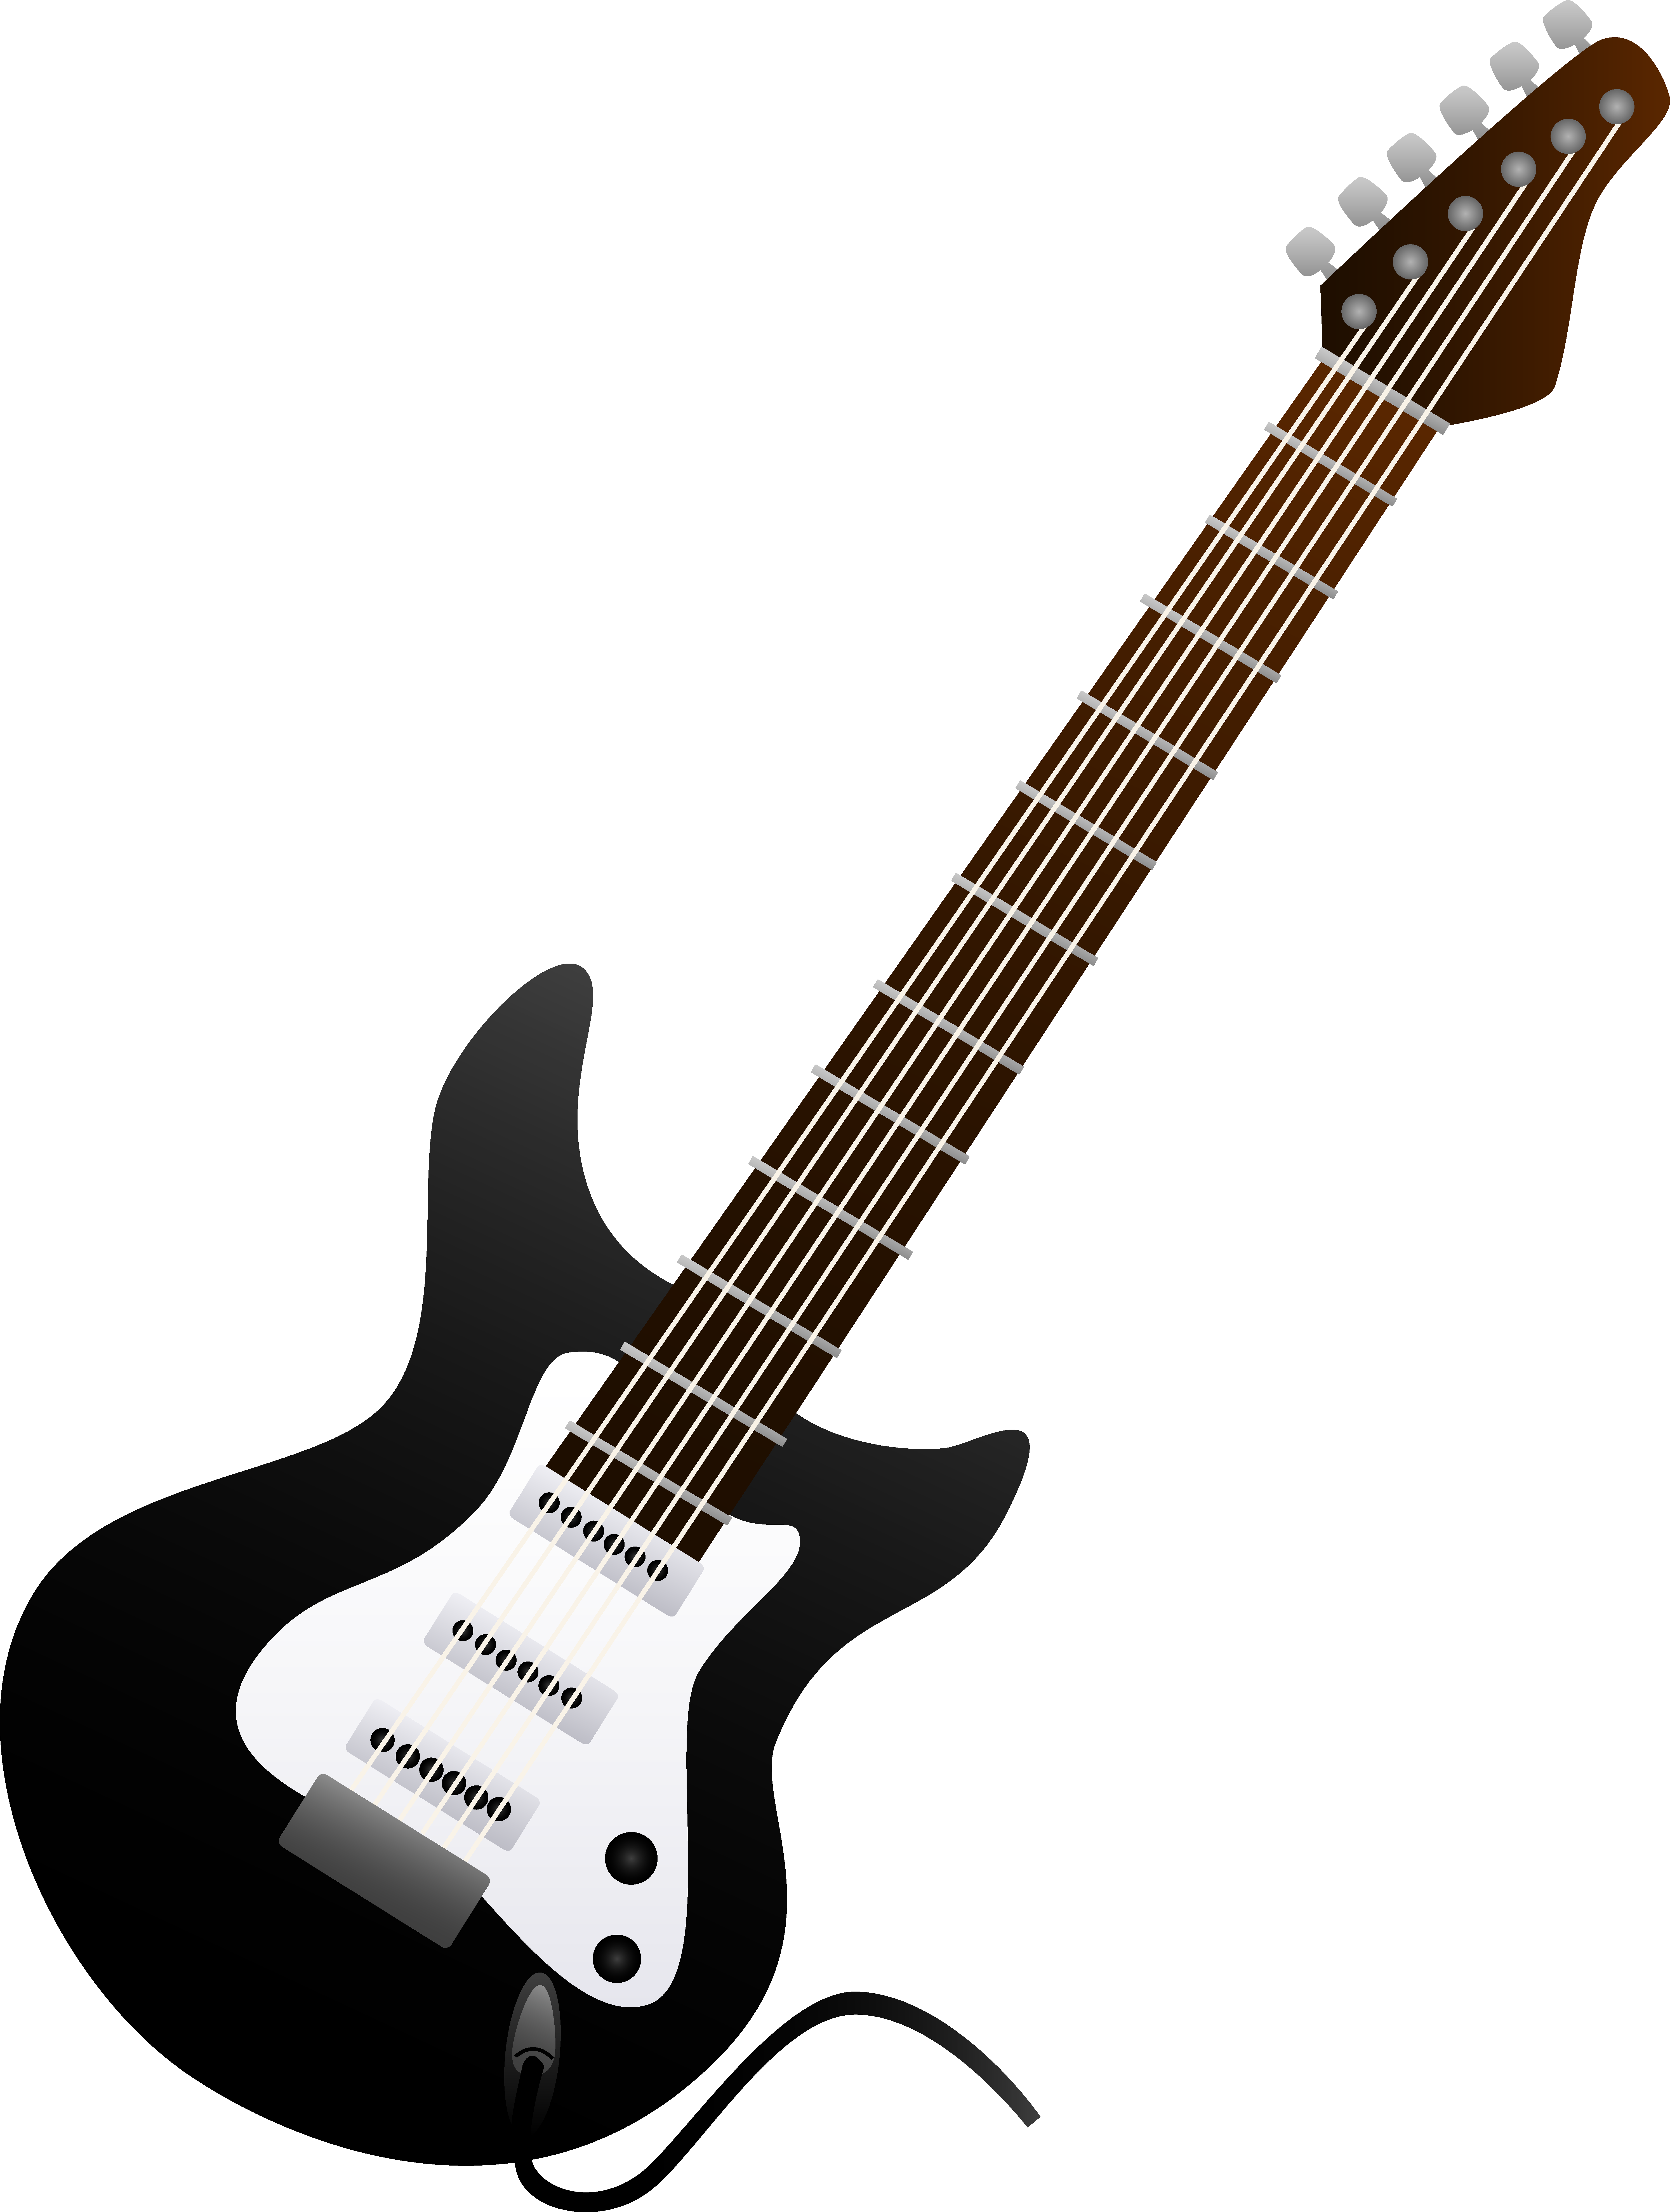 5971x7908 Pictures Of Electric Guitar